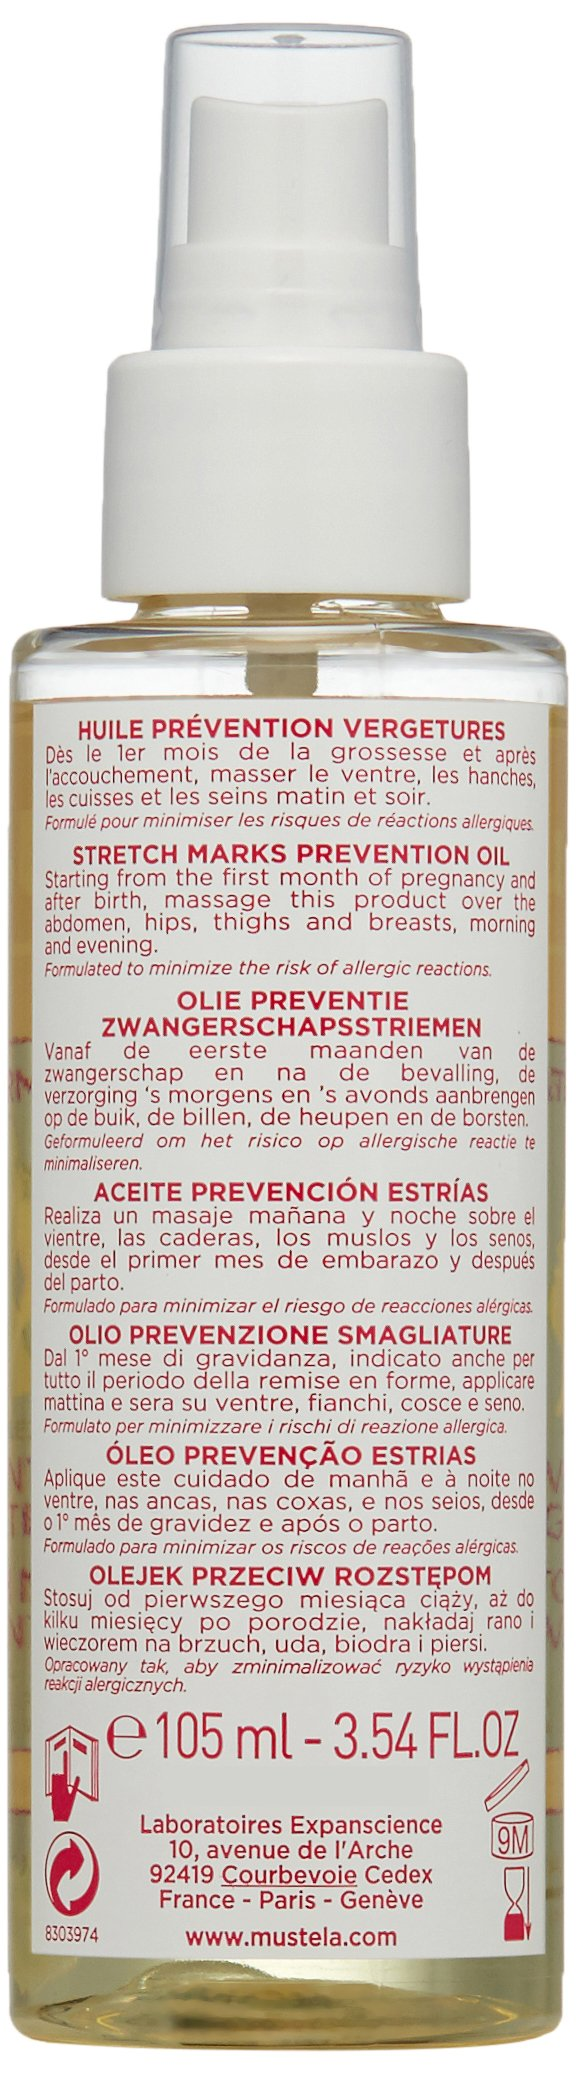 Mustela Stretch Marks Prevention Oil, 3.54 Fl Oz by Mustela (Image #4)